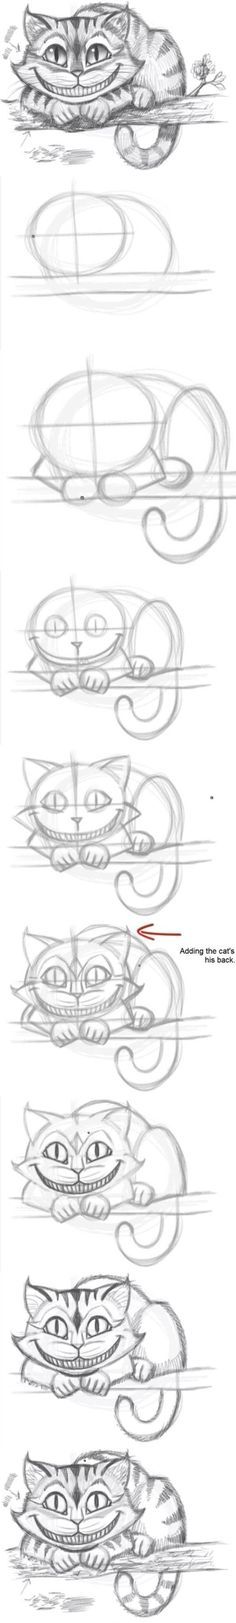 Meine Disney Zeichnung - Cheshire Cat from Alice In Wonderland. How to draw the Cheshire Cat - Logischesmädchen 44 - Pin Disney Drawings, Cool Drawings, Drawing Sketches, Drawing Ideas, Drawing Tips, Drawing Disney, Sketch Ideas, Sketching, Drawing Stuff